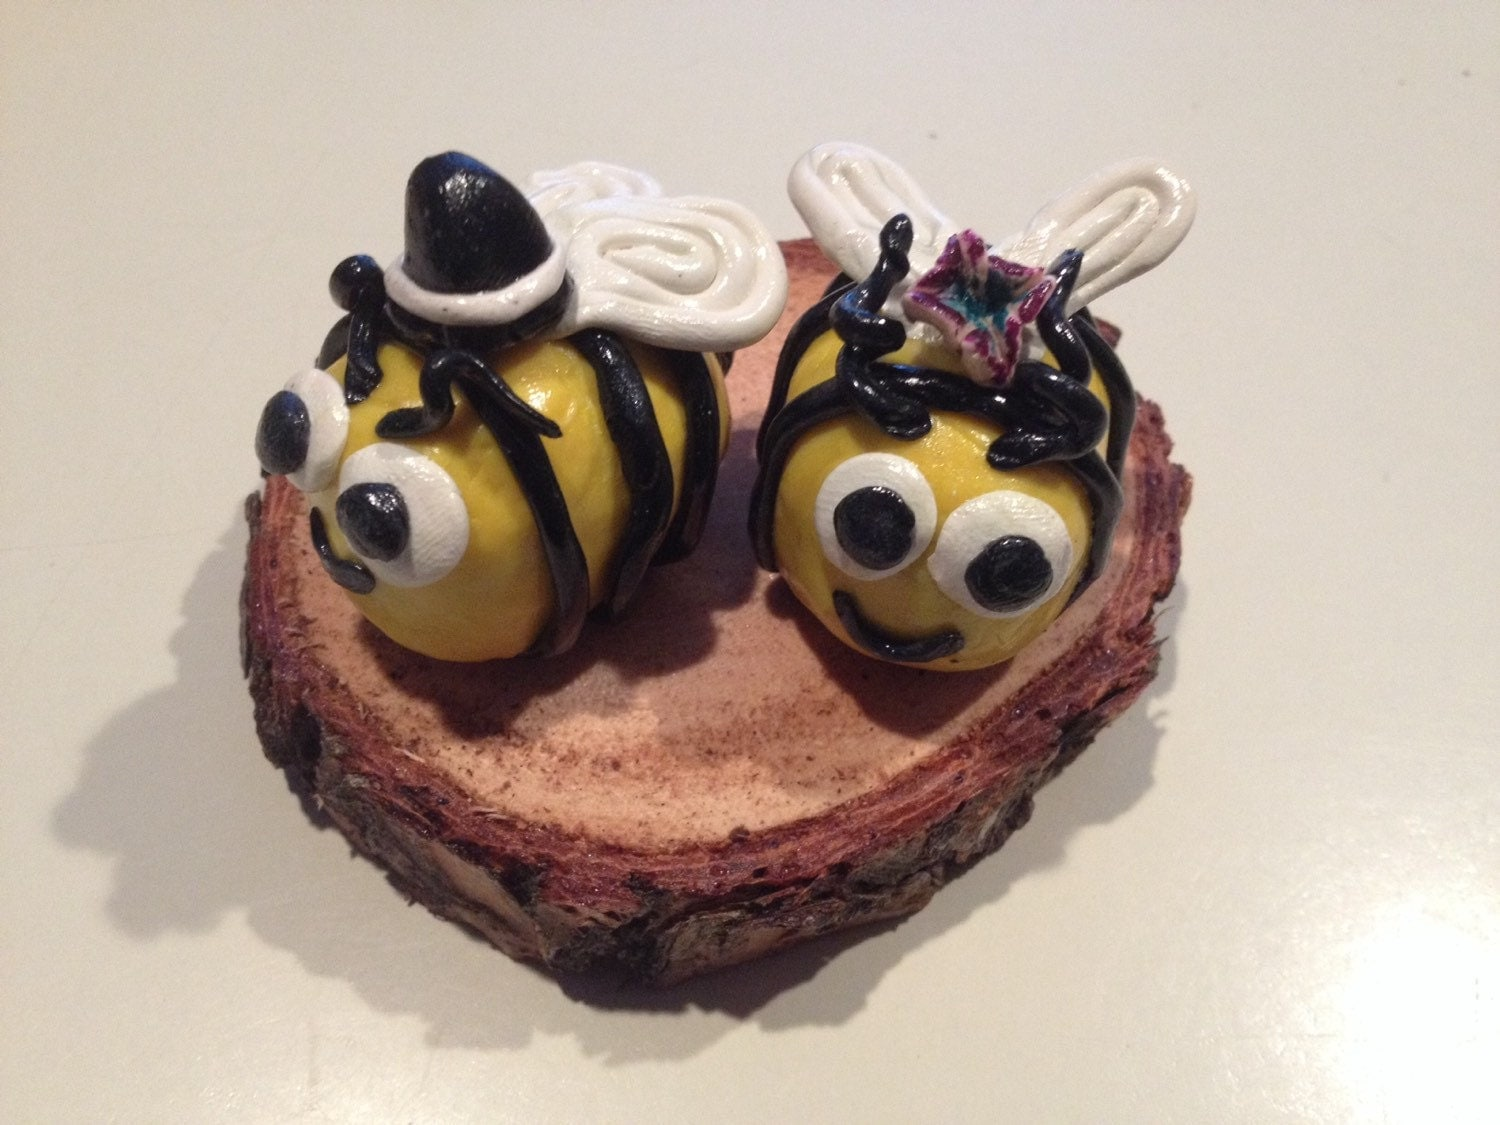 Cake Decor Figurines : Honey Bees Wedding cake toppers figurines